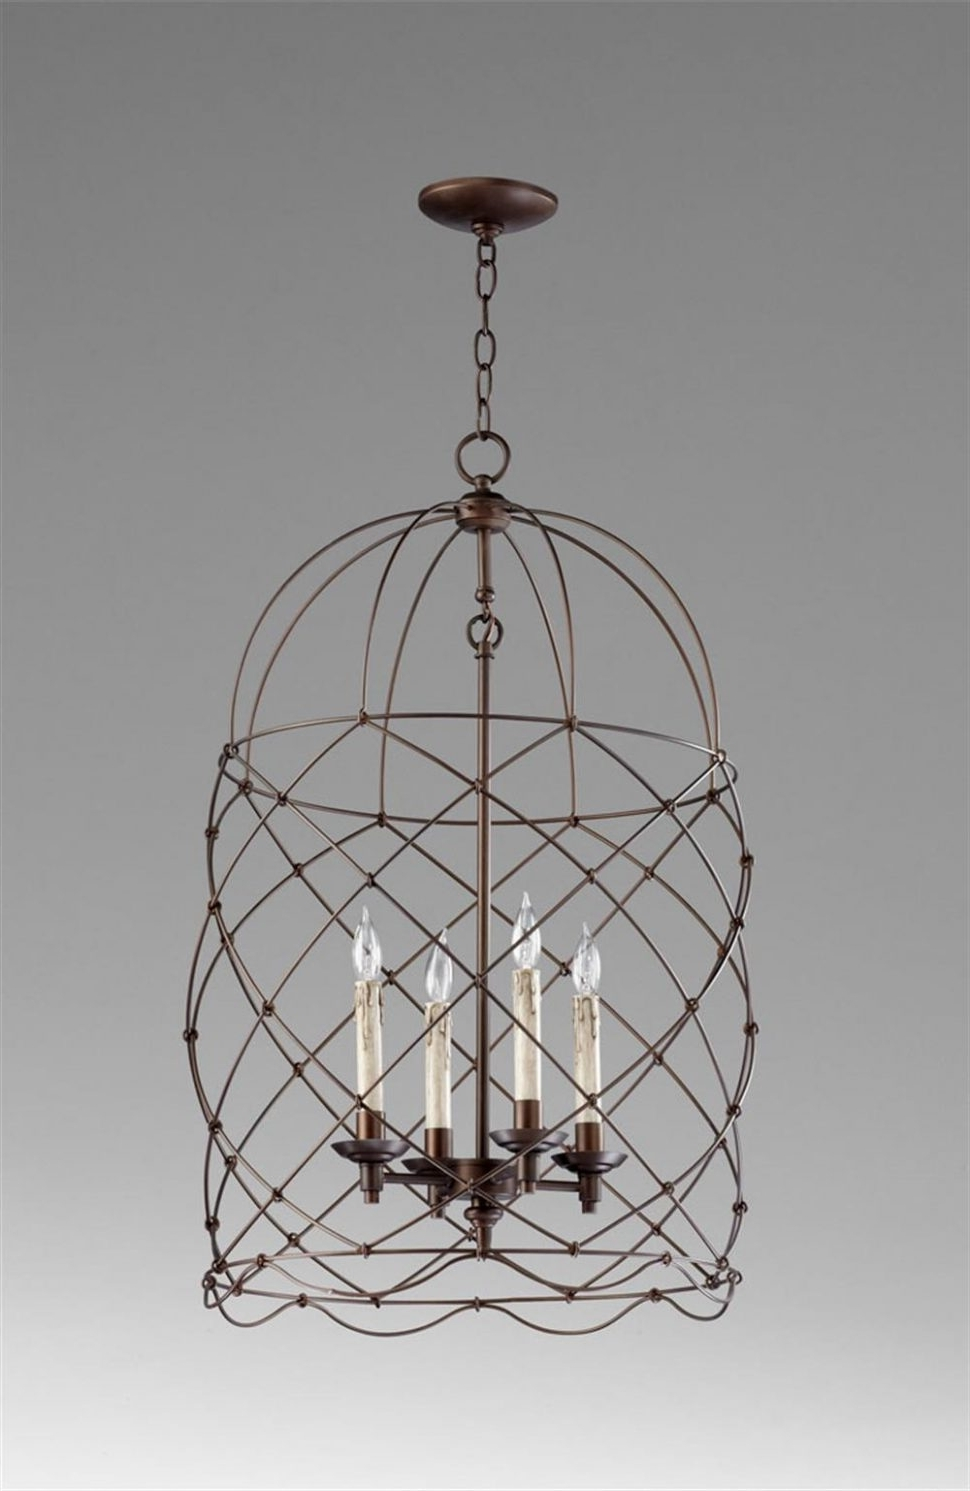 Cage Chandeliers Pertaining To Widely Used Chandeliers Design : Magnificent Cage Chandelier Lighting Currey (View 5 of 15)